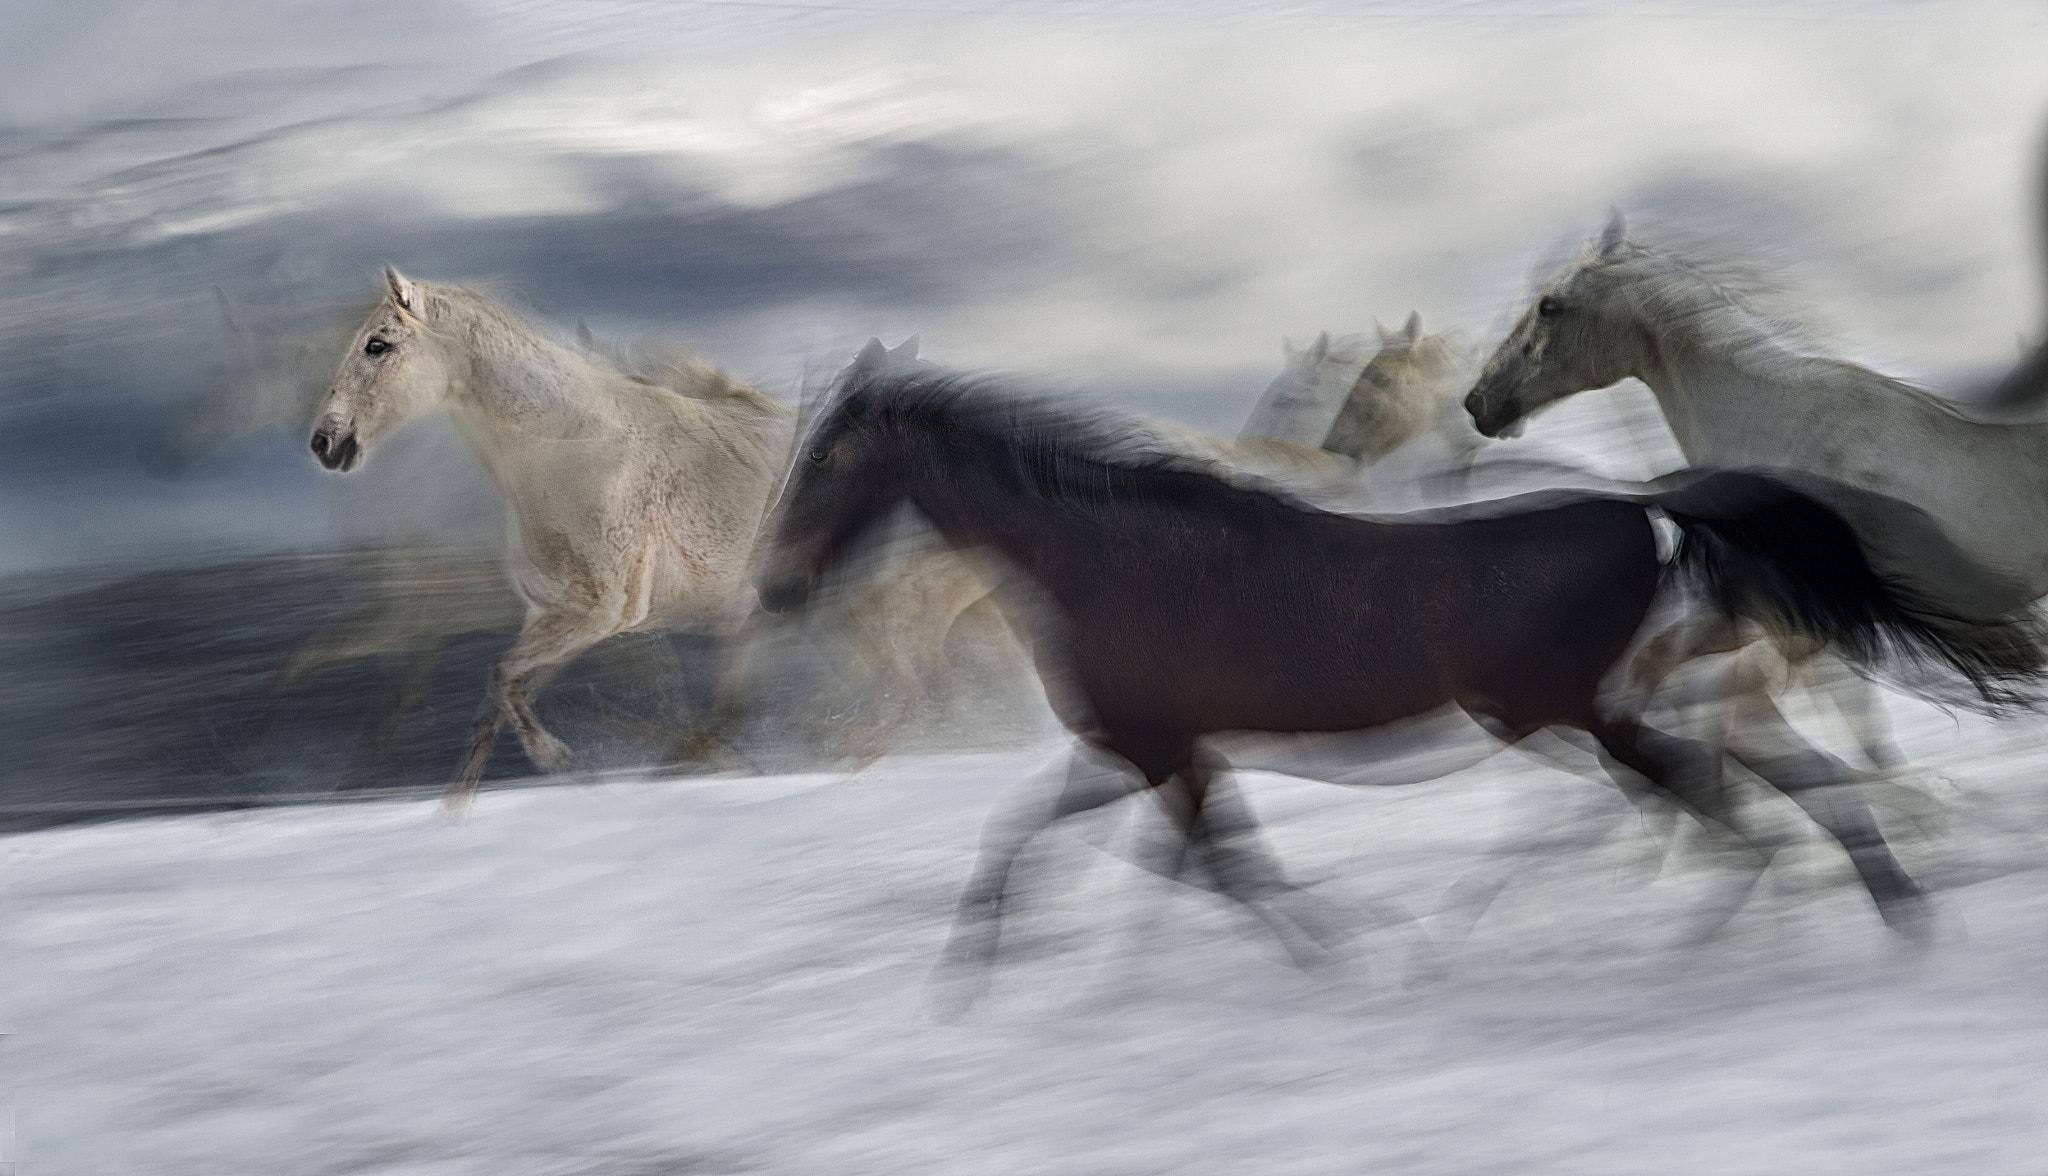 Photograph Gallop in snow by Milan Malovrh on 500px